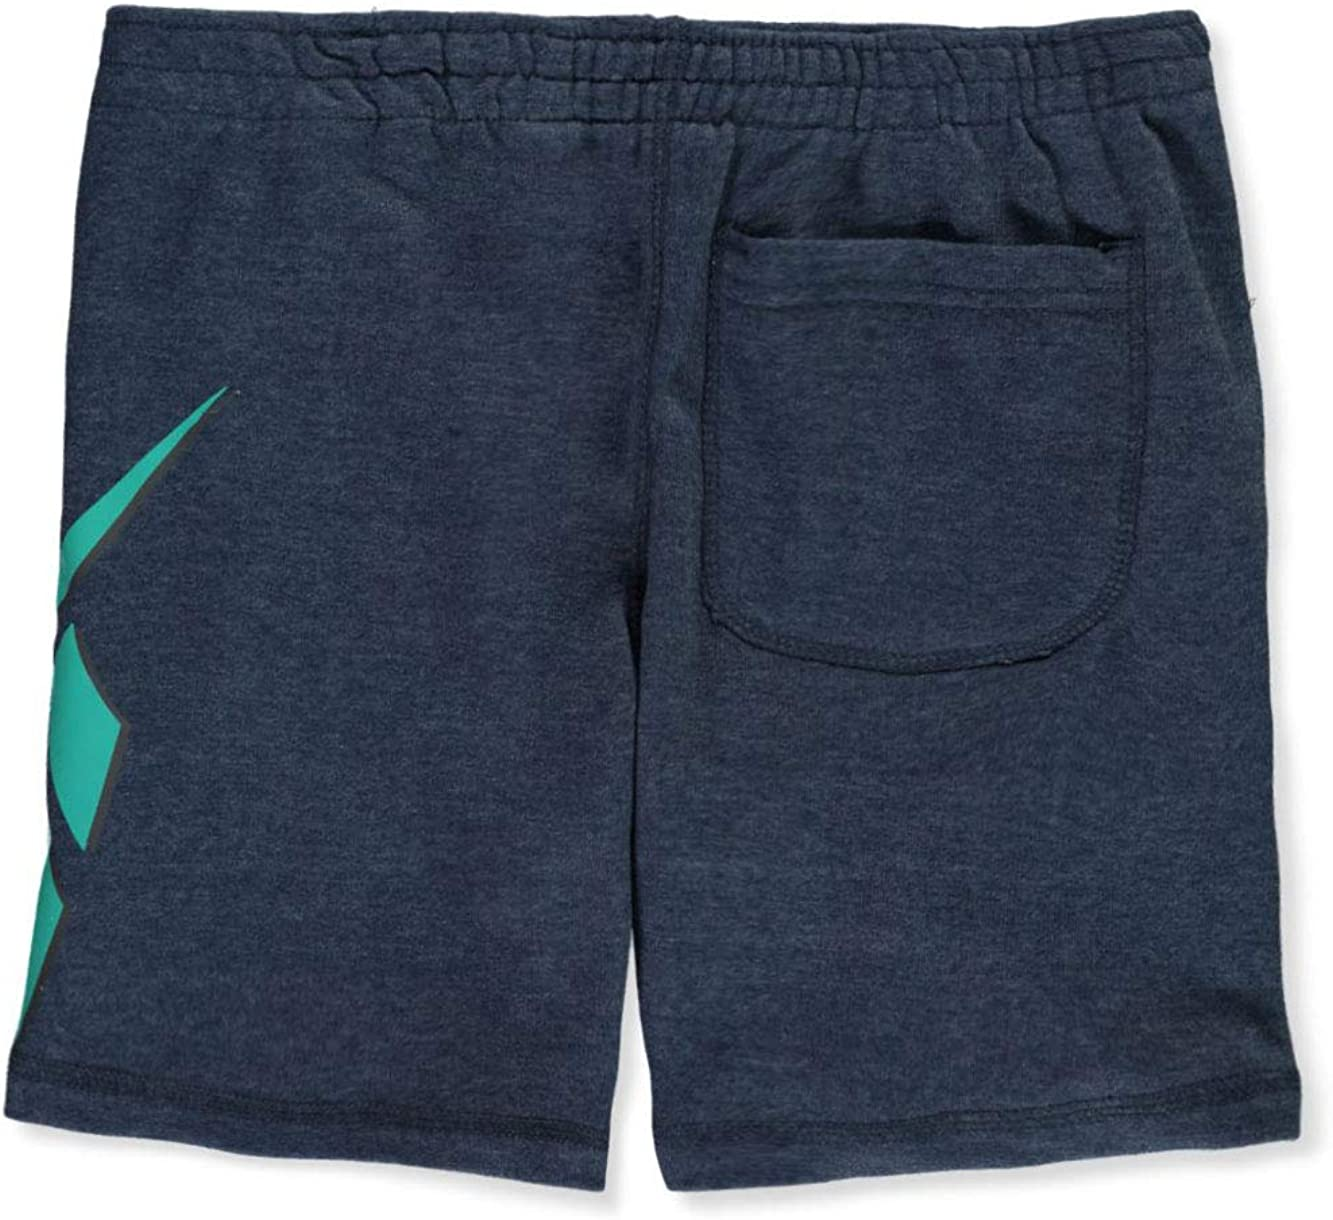 Reebok Boys Shorts